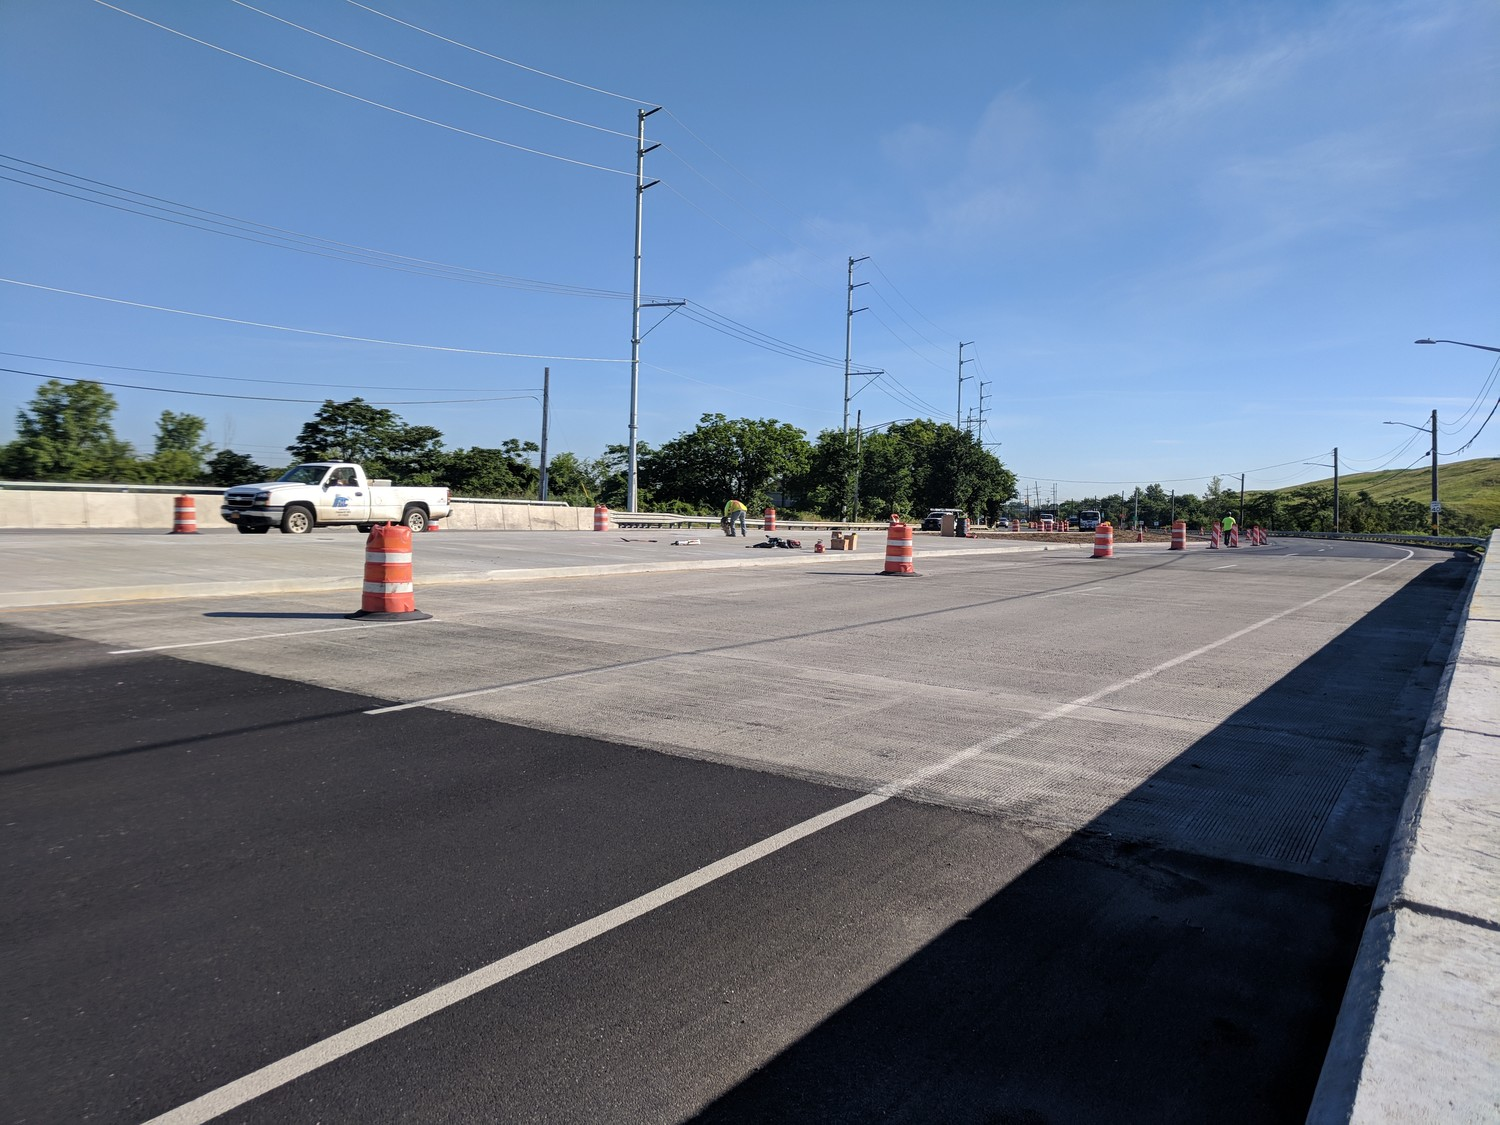 Workers put the finishing touches on the Barnum Island Bridge in Island Park hours before it's official completion on June 29. While one and sometimes two lanes were closed during construction, all three lanes going both ways are now open.